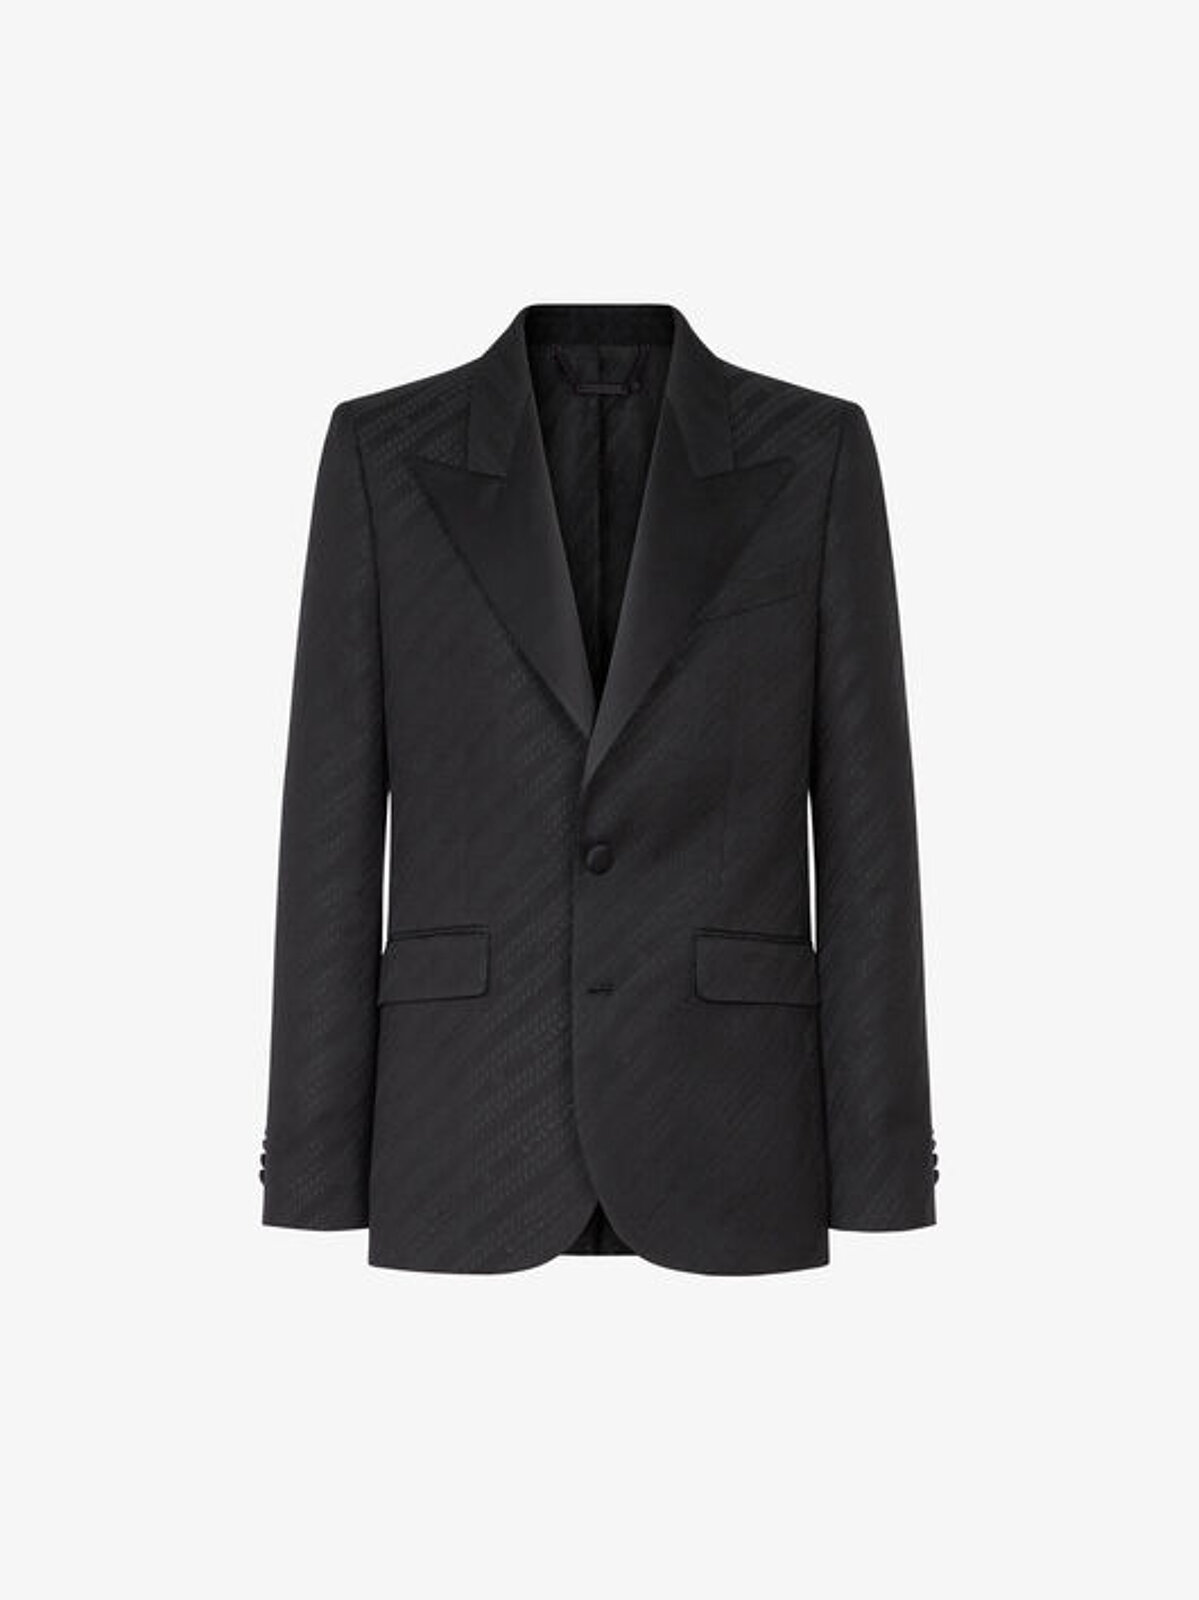 GIVENCHY Chaine jacquard jacket with satin collar - Givenchy